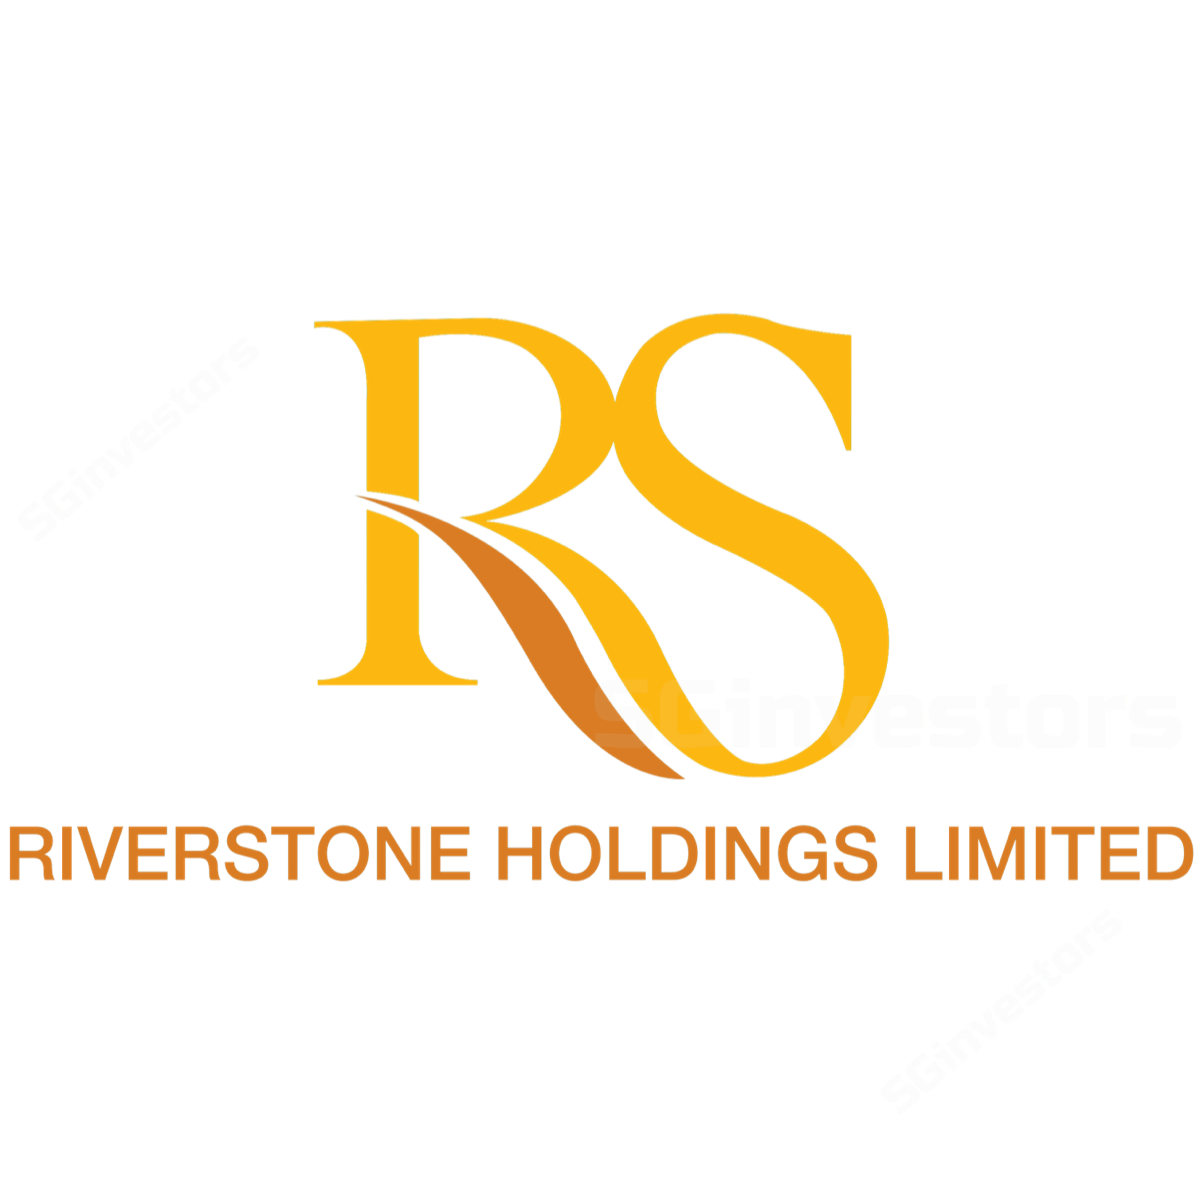 Riverstone Holdings (RSTON SP) - Maybank Kim Eng 2016-12-08: Expansion on track; limited impact from repatriation rule